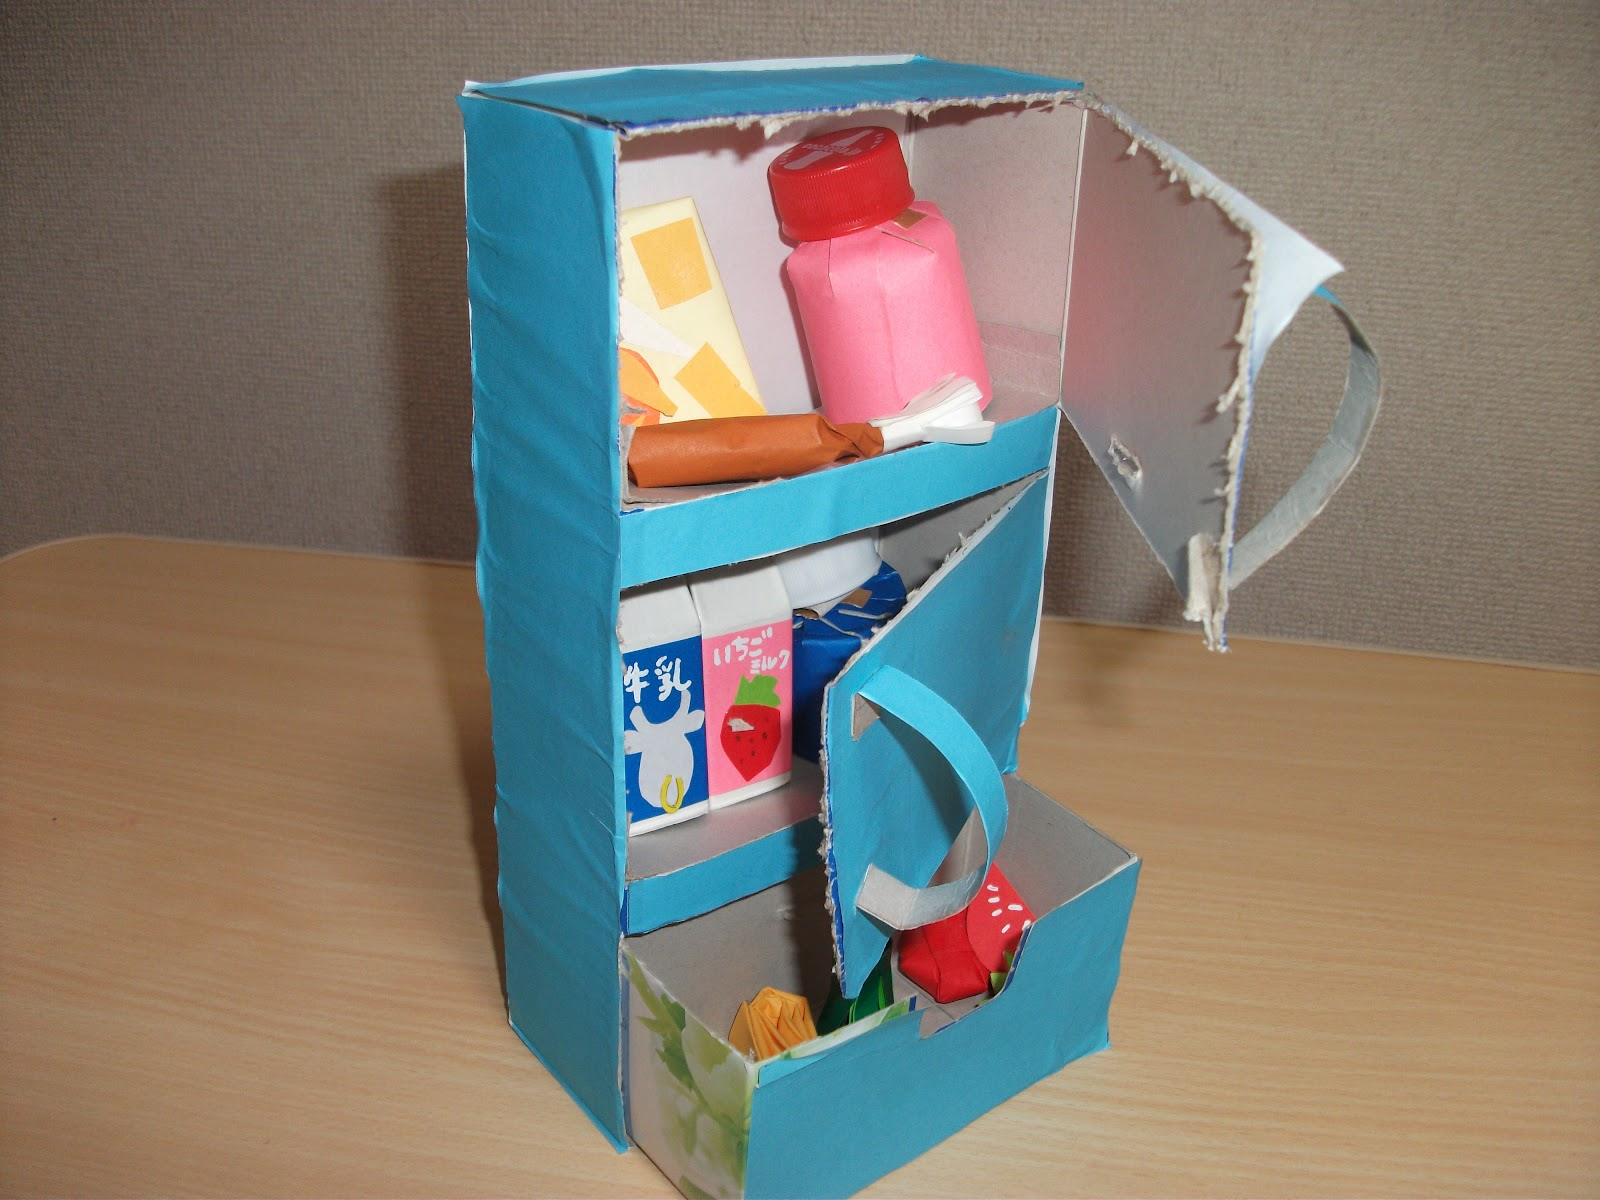 Refrigerator Tissue Box Craft Preschool Crafts For Kids